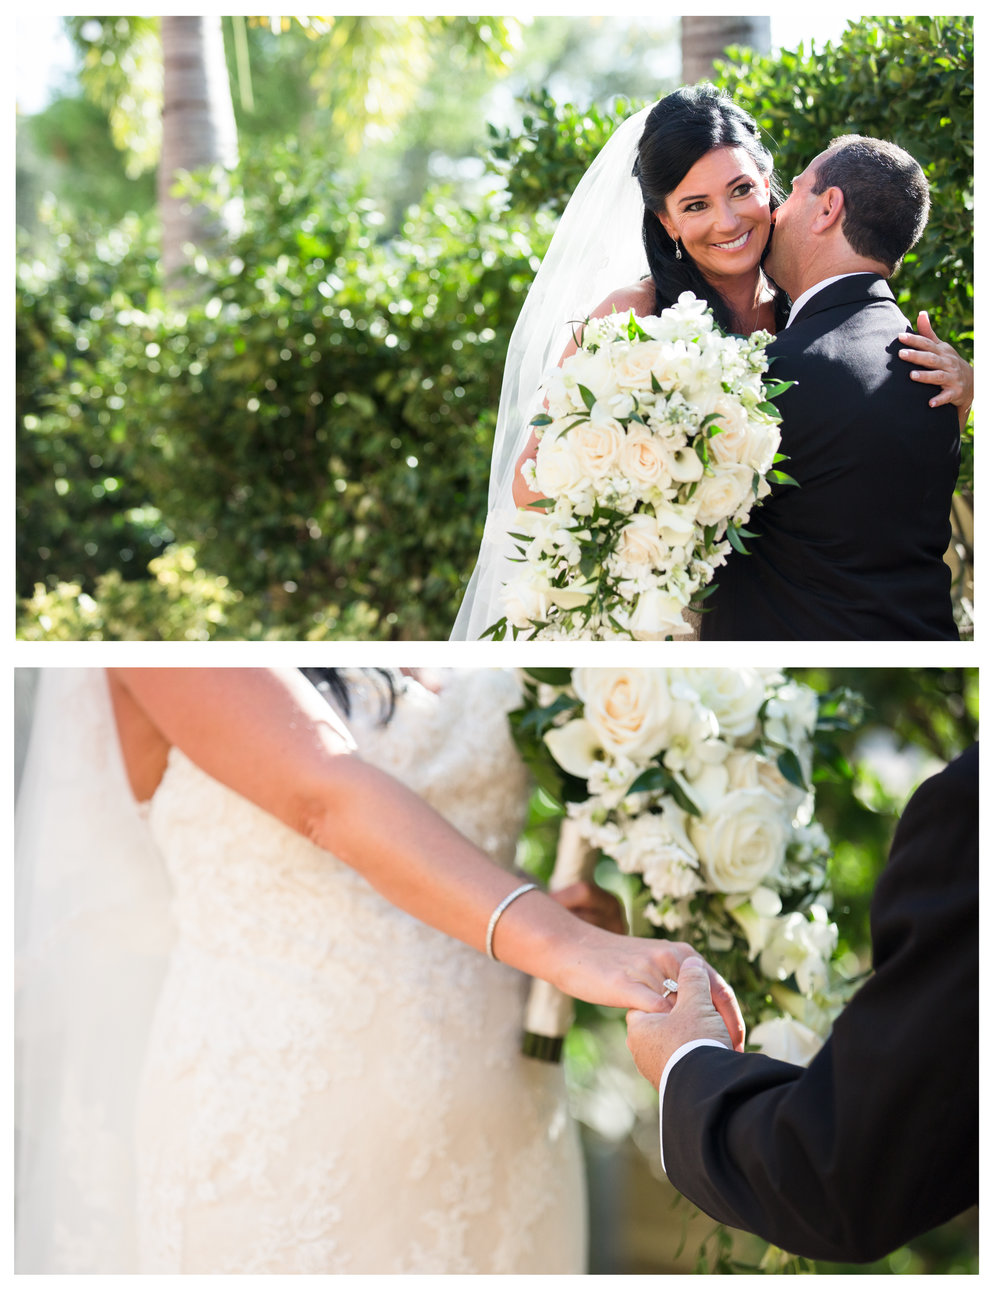 Benvenuto_Boynton_Beach_Wedding_Christine_and Doug_Married 3.jpg